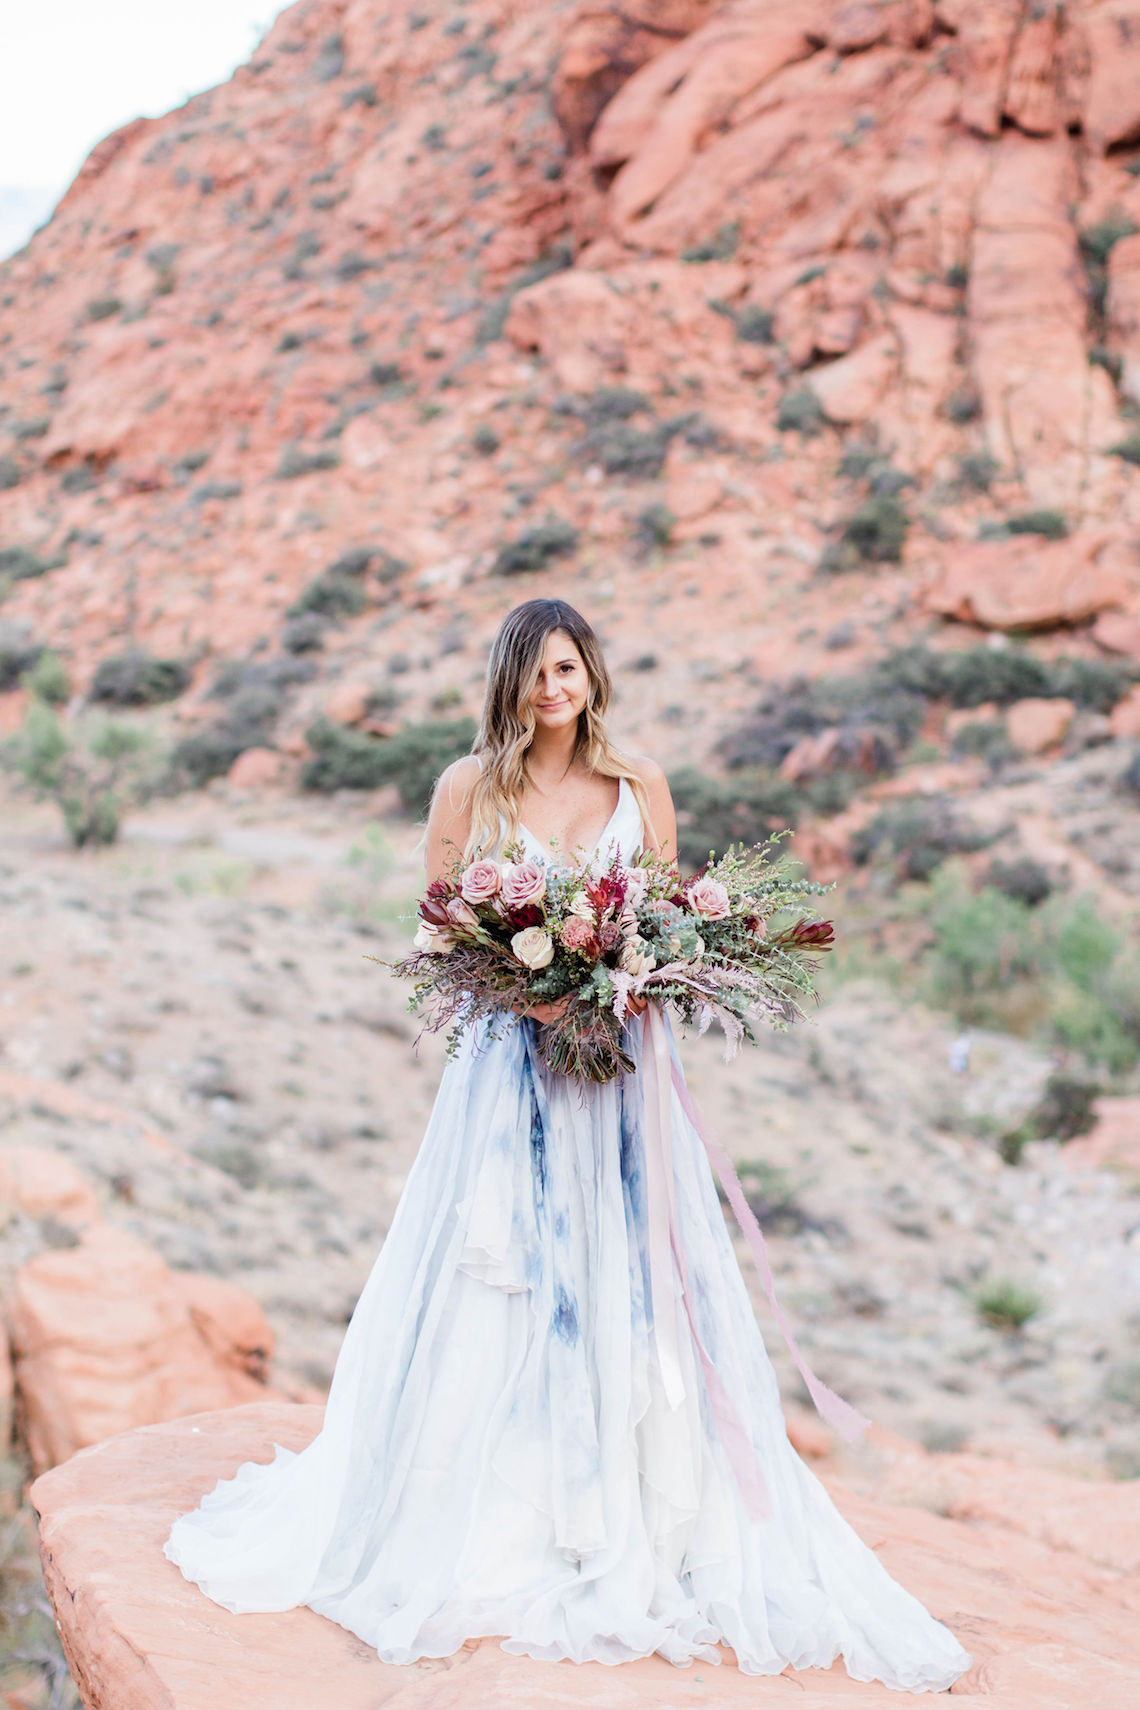 Red Rock Desert Romance With A Whimsical Blue Leanne Marshall Wedding Dress – Elizabeth M Photography 41